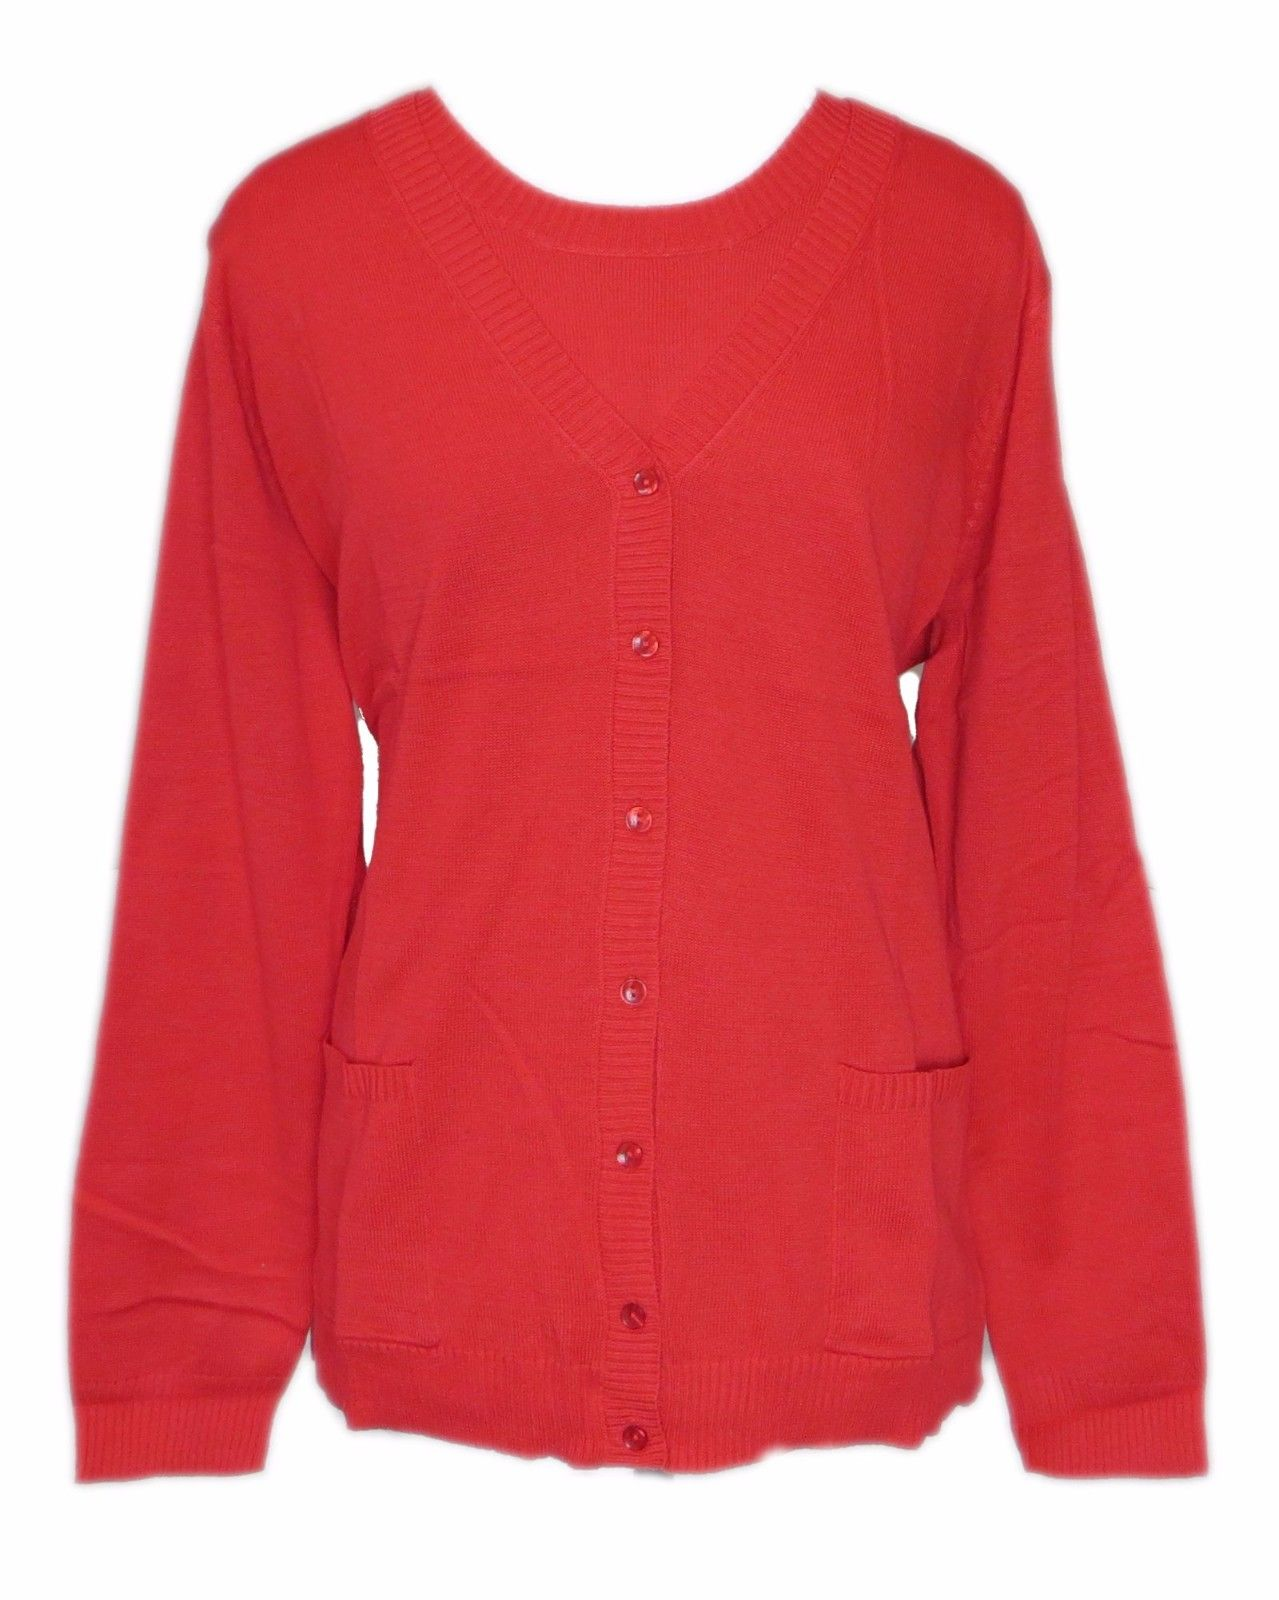 Size S Denim & Co. Sweater Set in Red